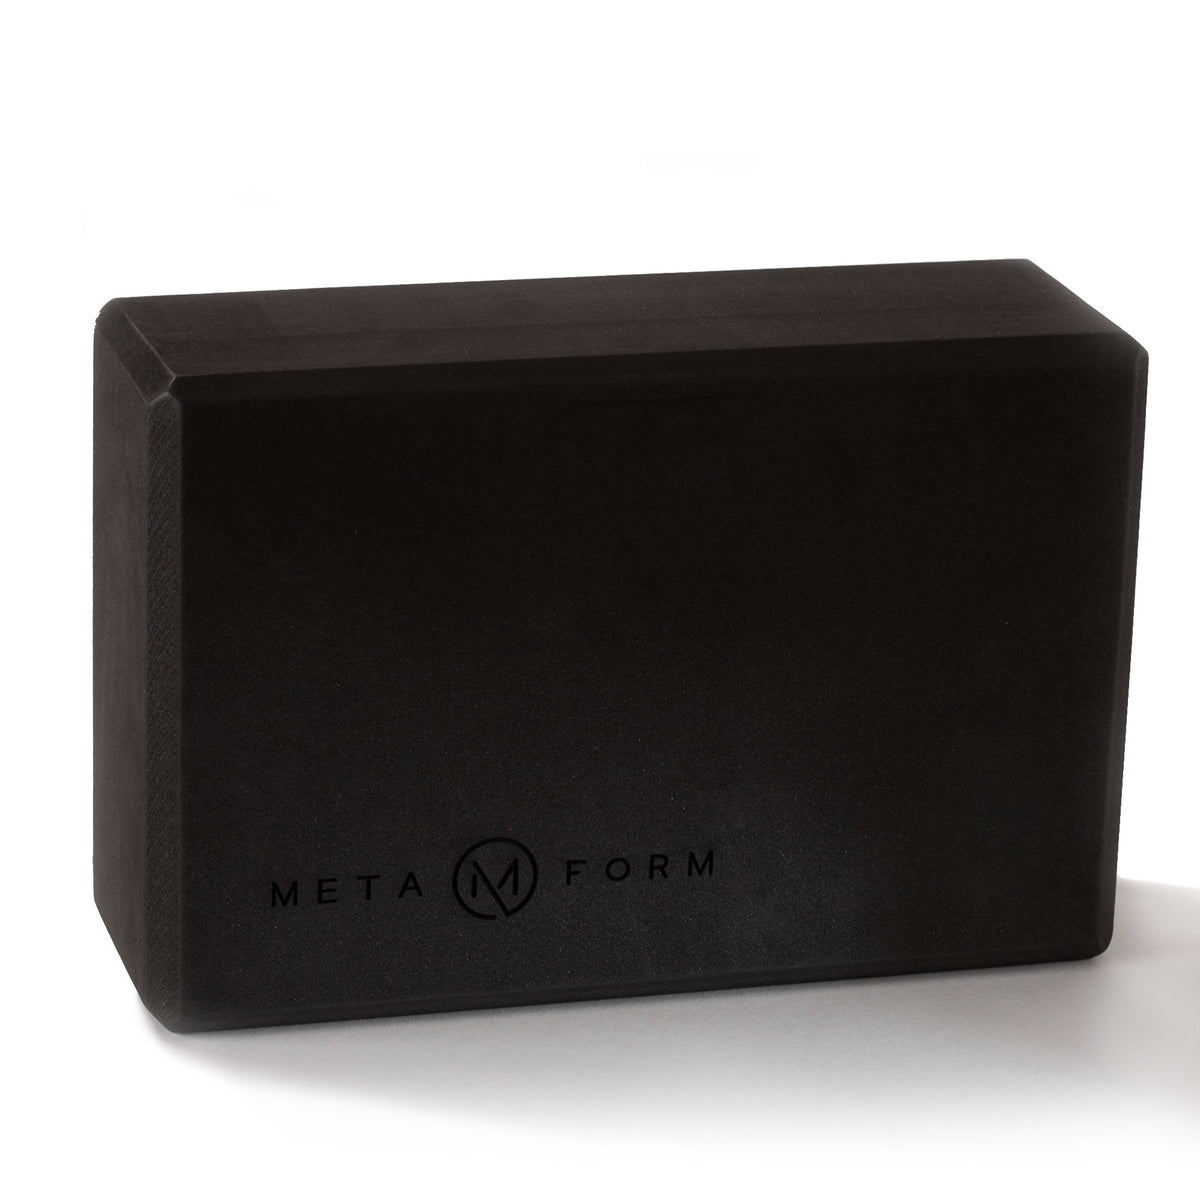 Metaform Yoga Block